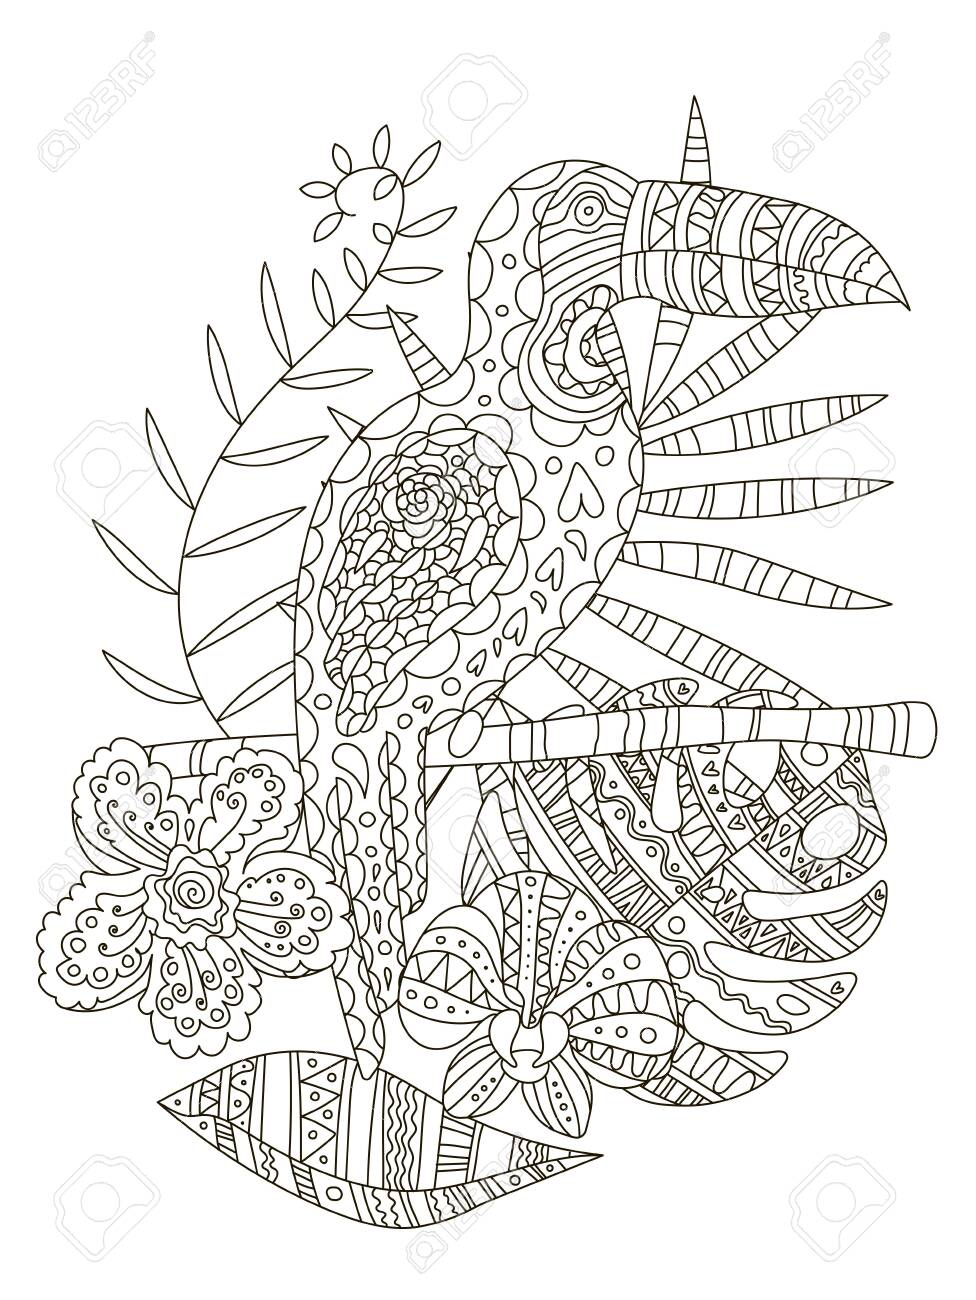 coloring pages : Flower Drawing Colour New Floral Tattoo Design ... | 1300x976